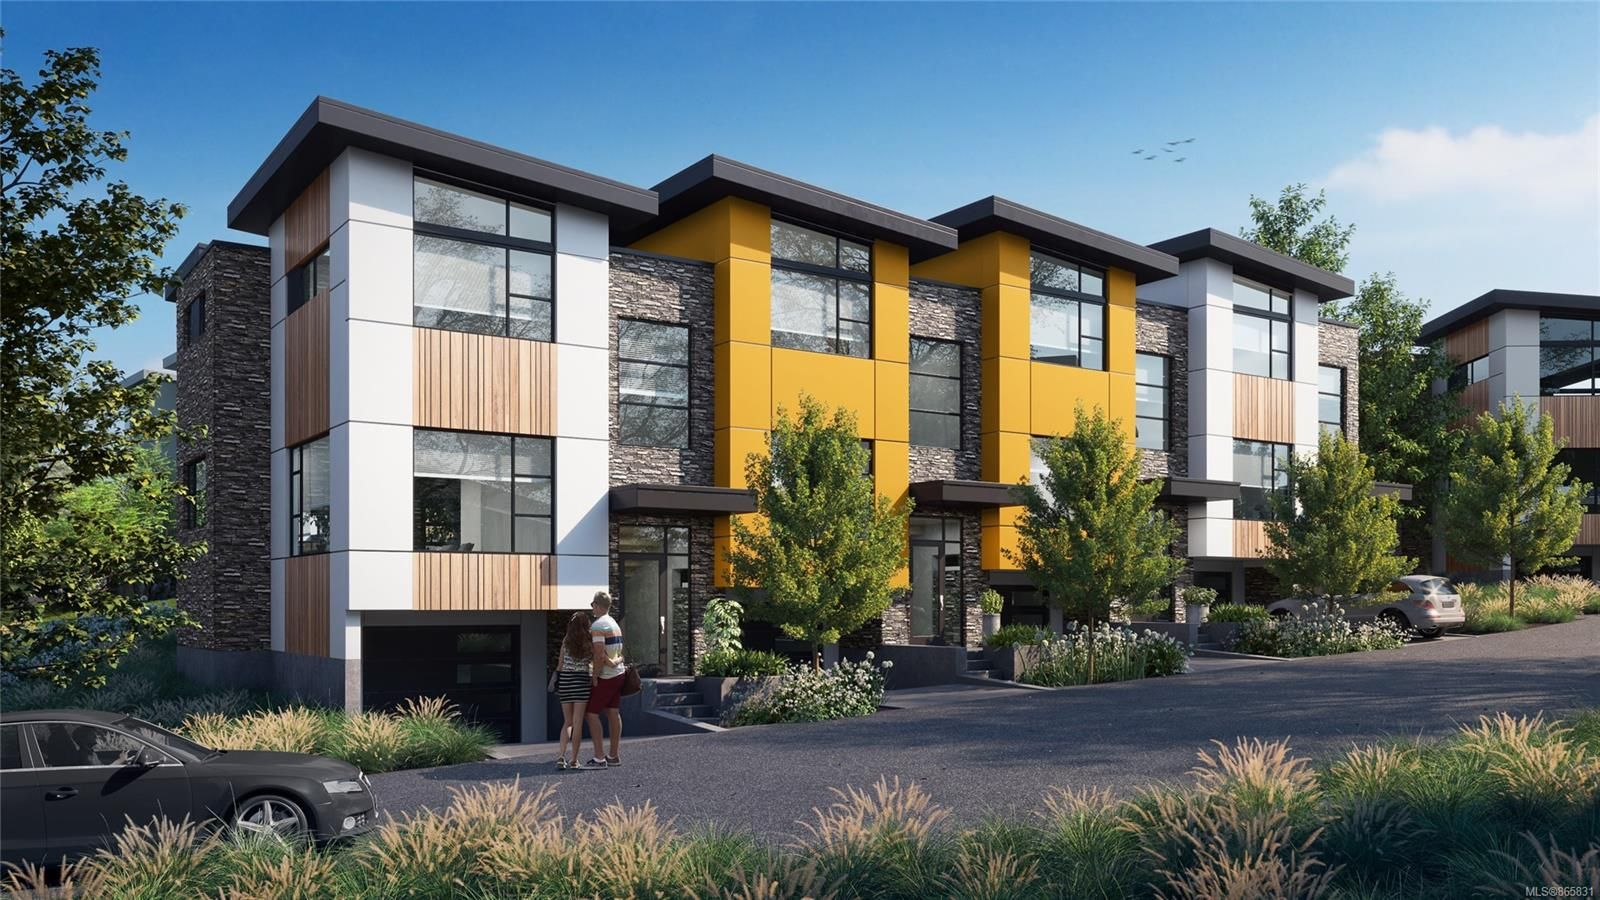 Main Photo: 21 4253 Dieppe Rd in : SE High Quadra Row/Townhouse for sale (Saanich East)  : MLS®# 865831